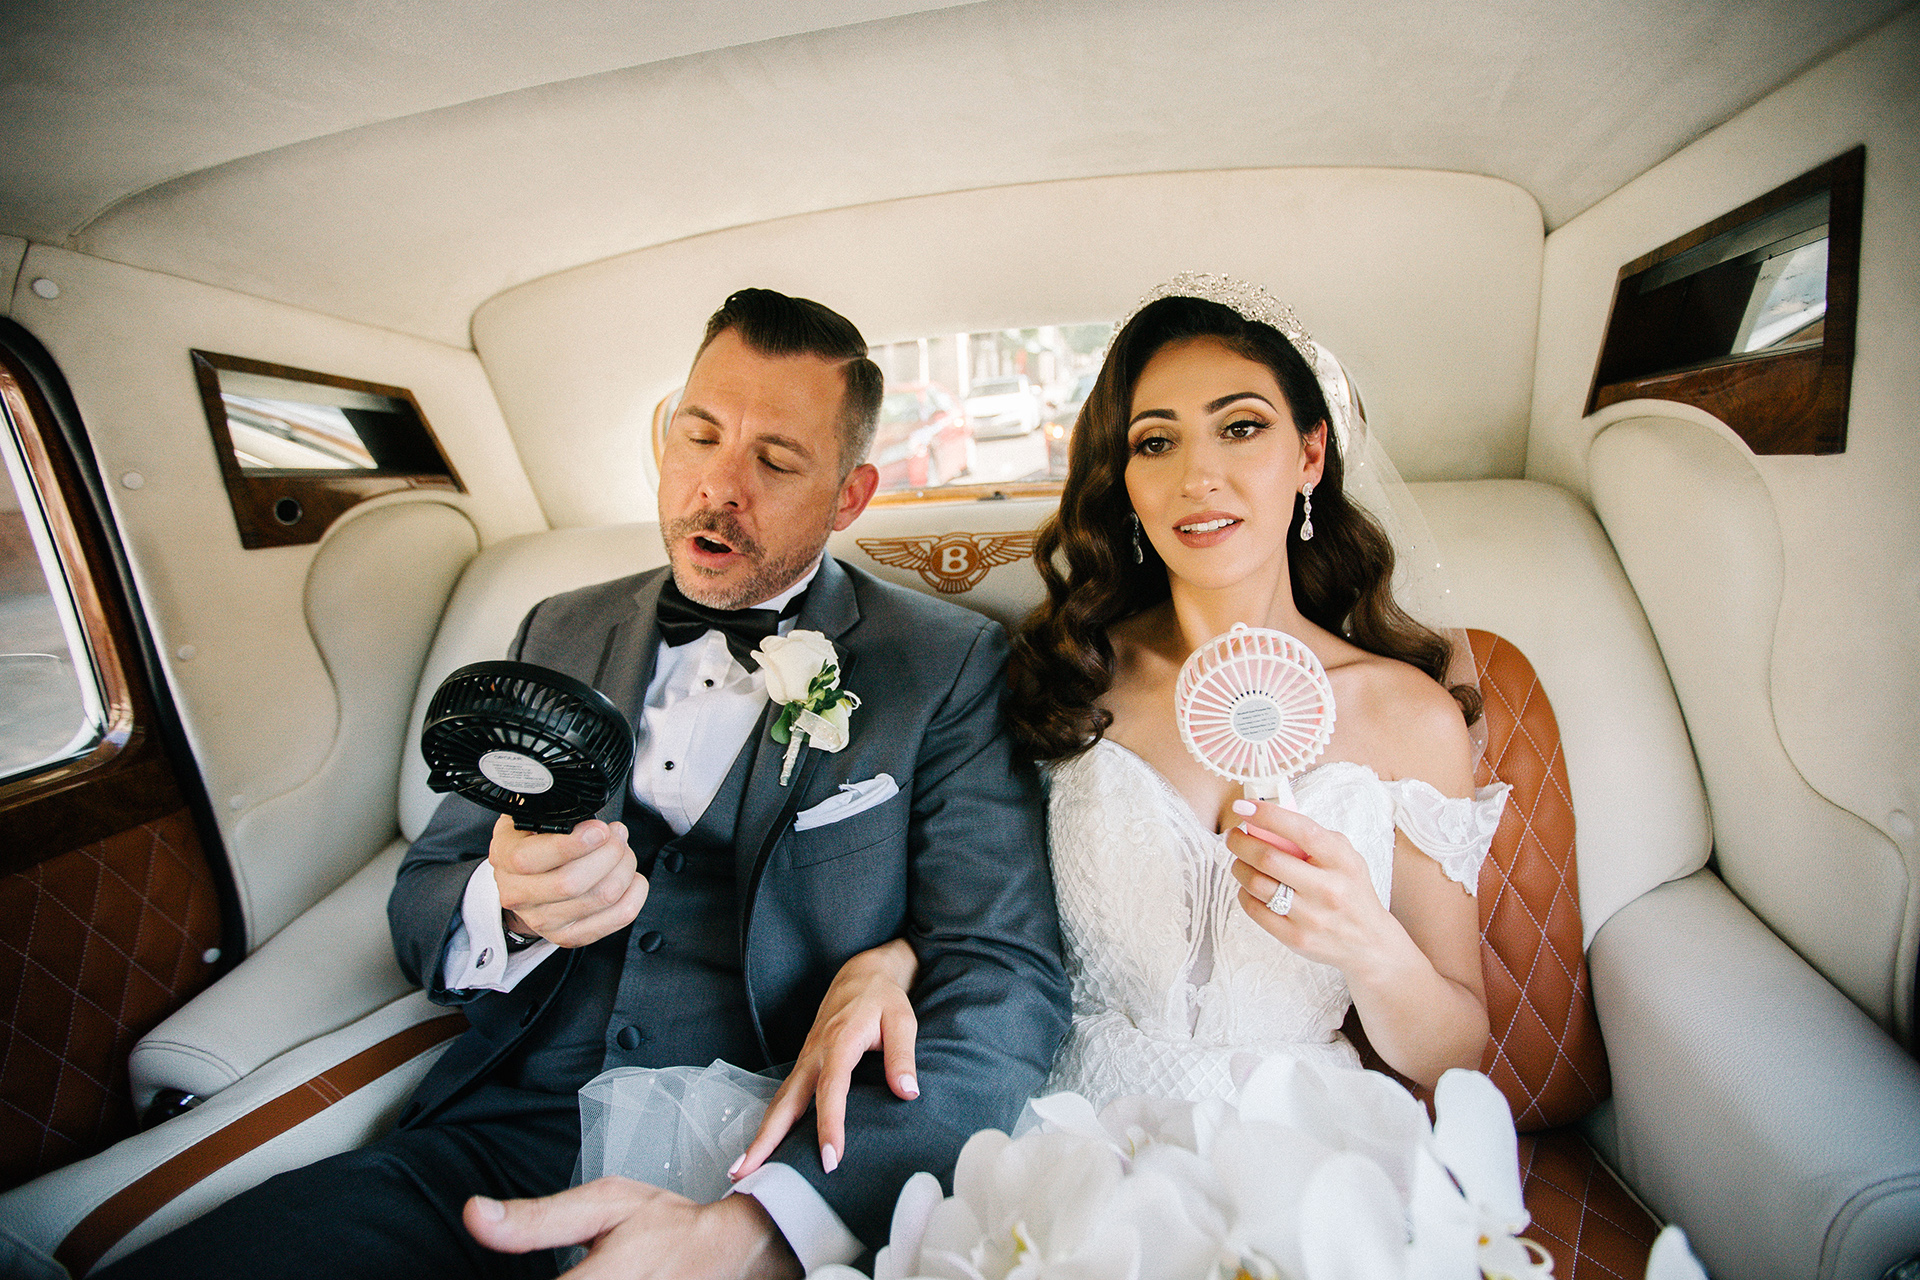 Raymond Nguyen, of California, is a wedding photographer for hyatt